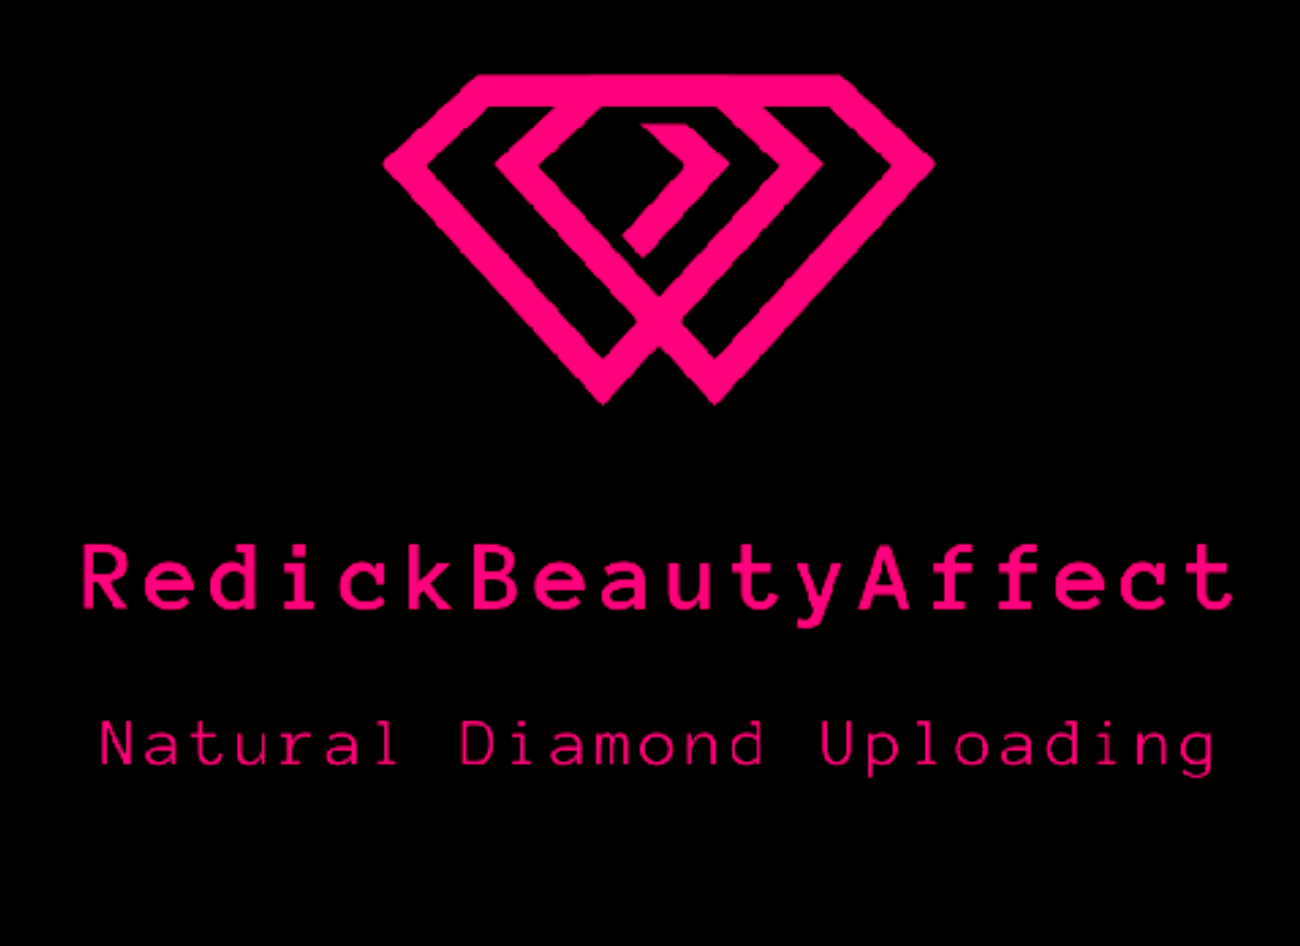 Redick Beauty Affect primary brand logo